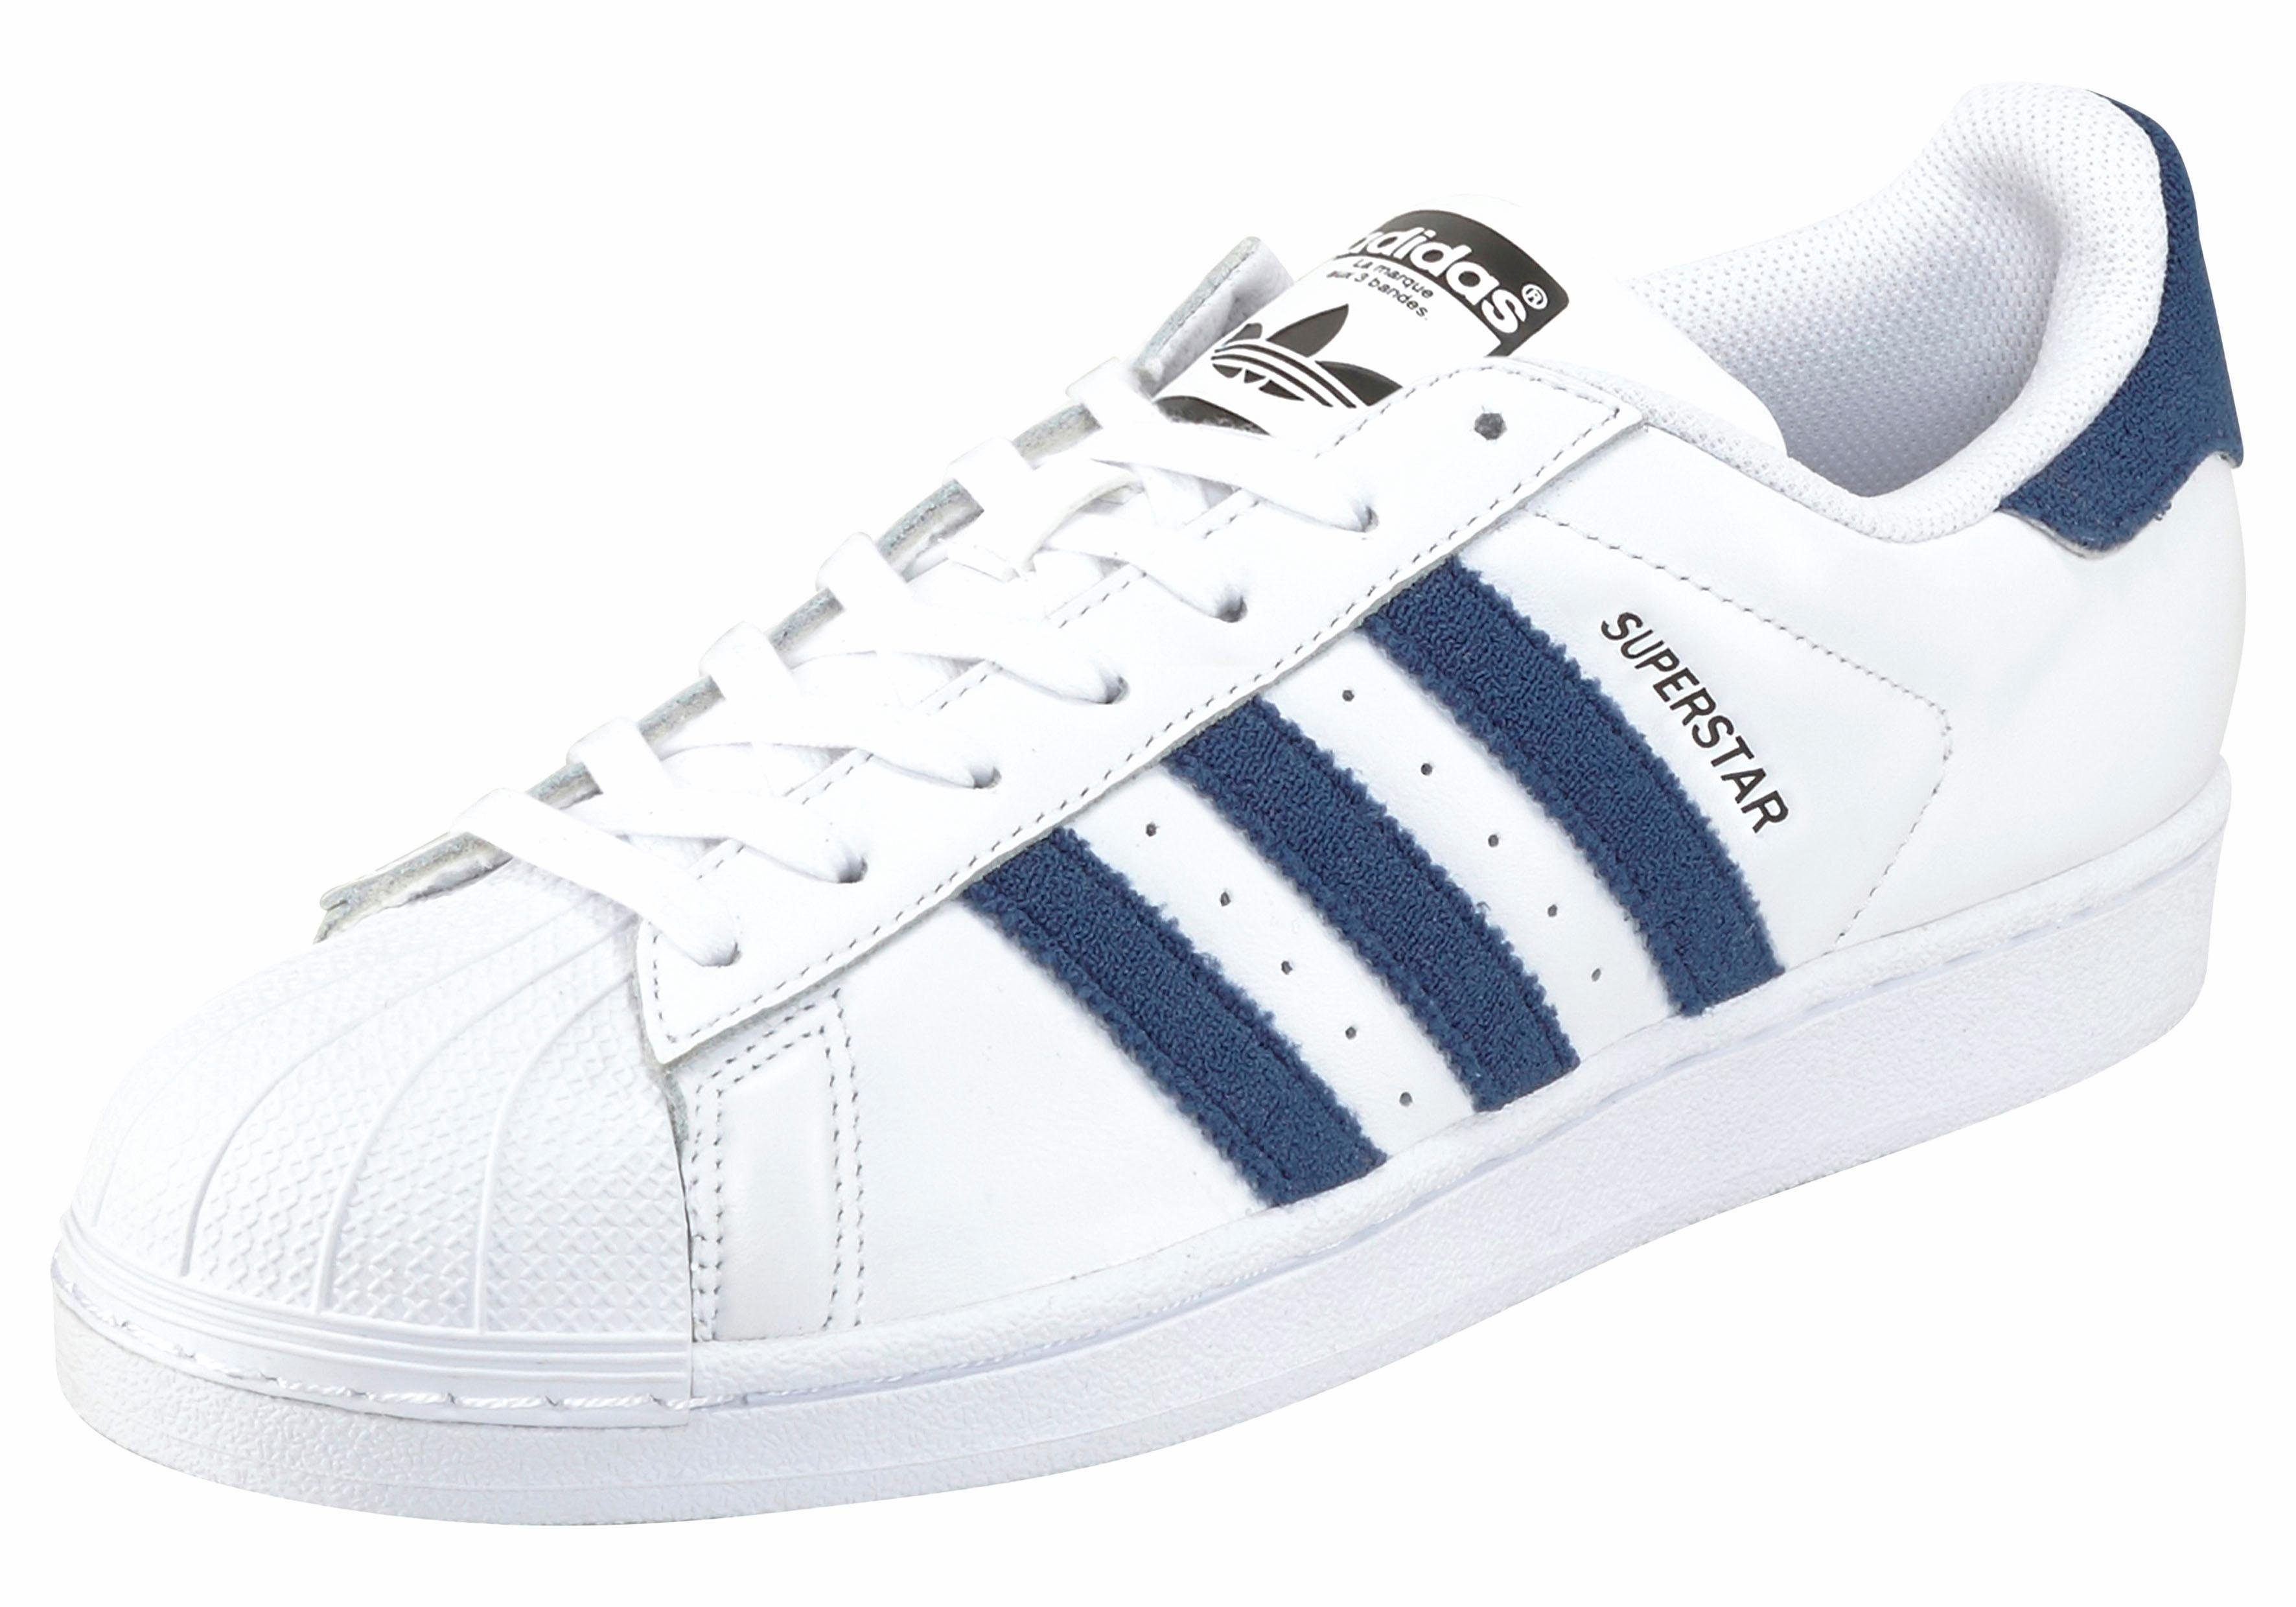 Witte Gympen Sneakers Online Kopen Grote Collectie Otto